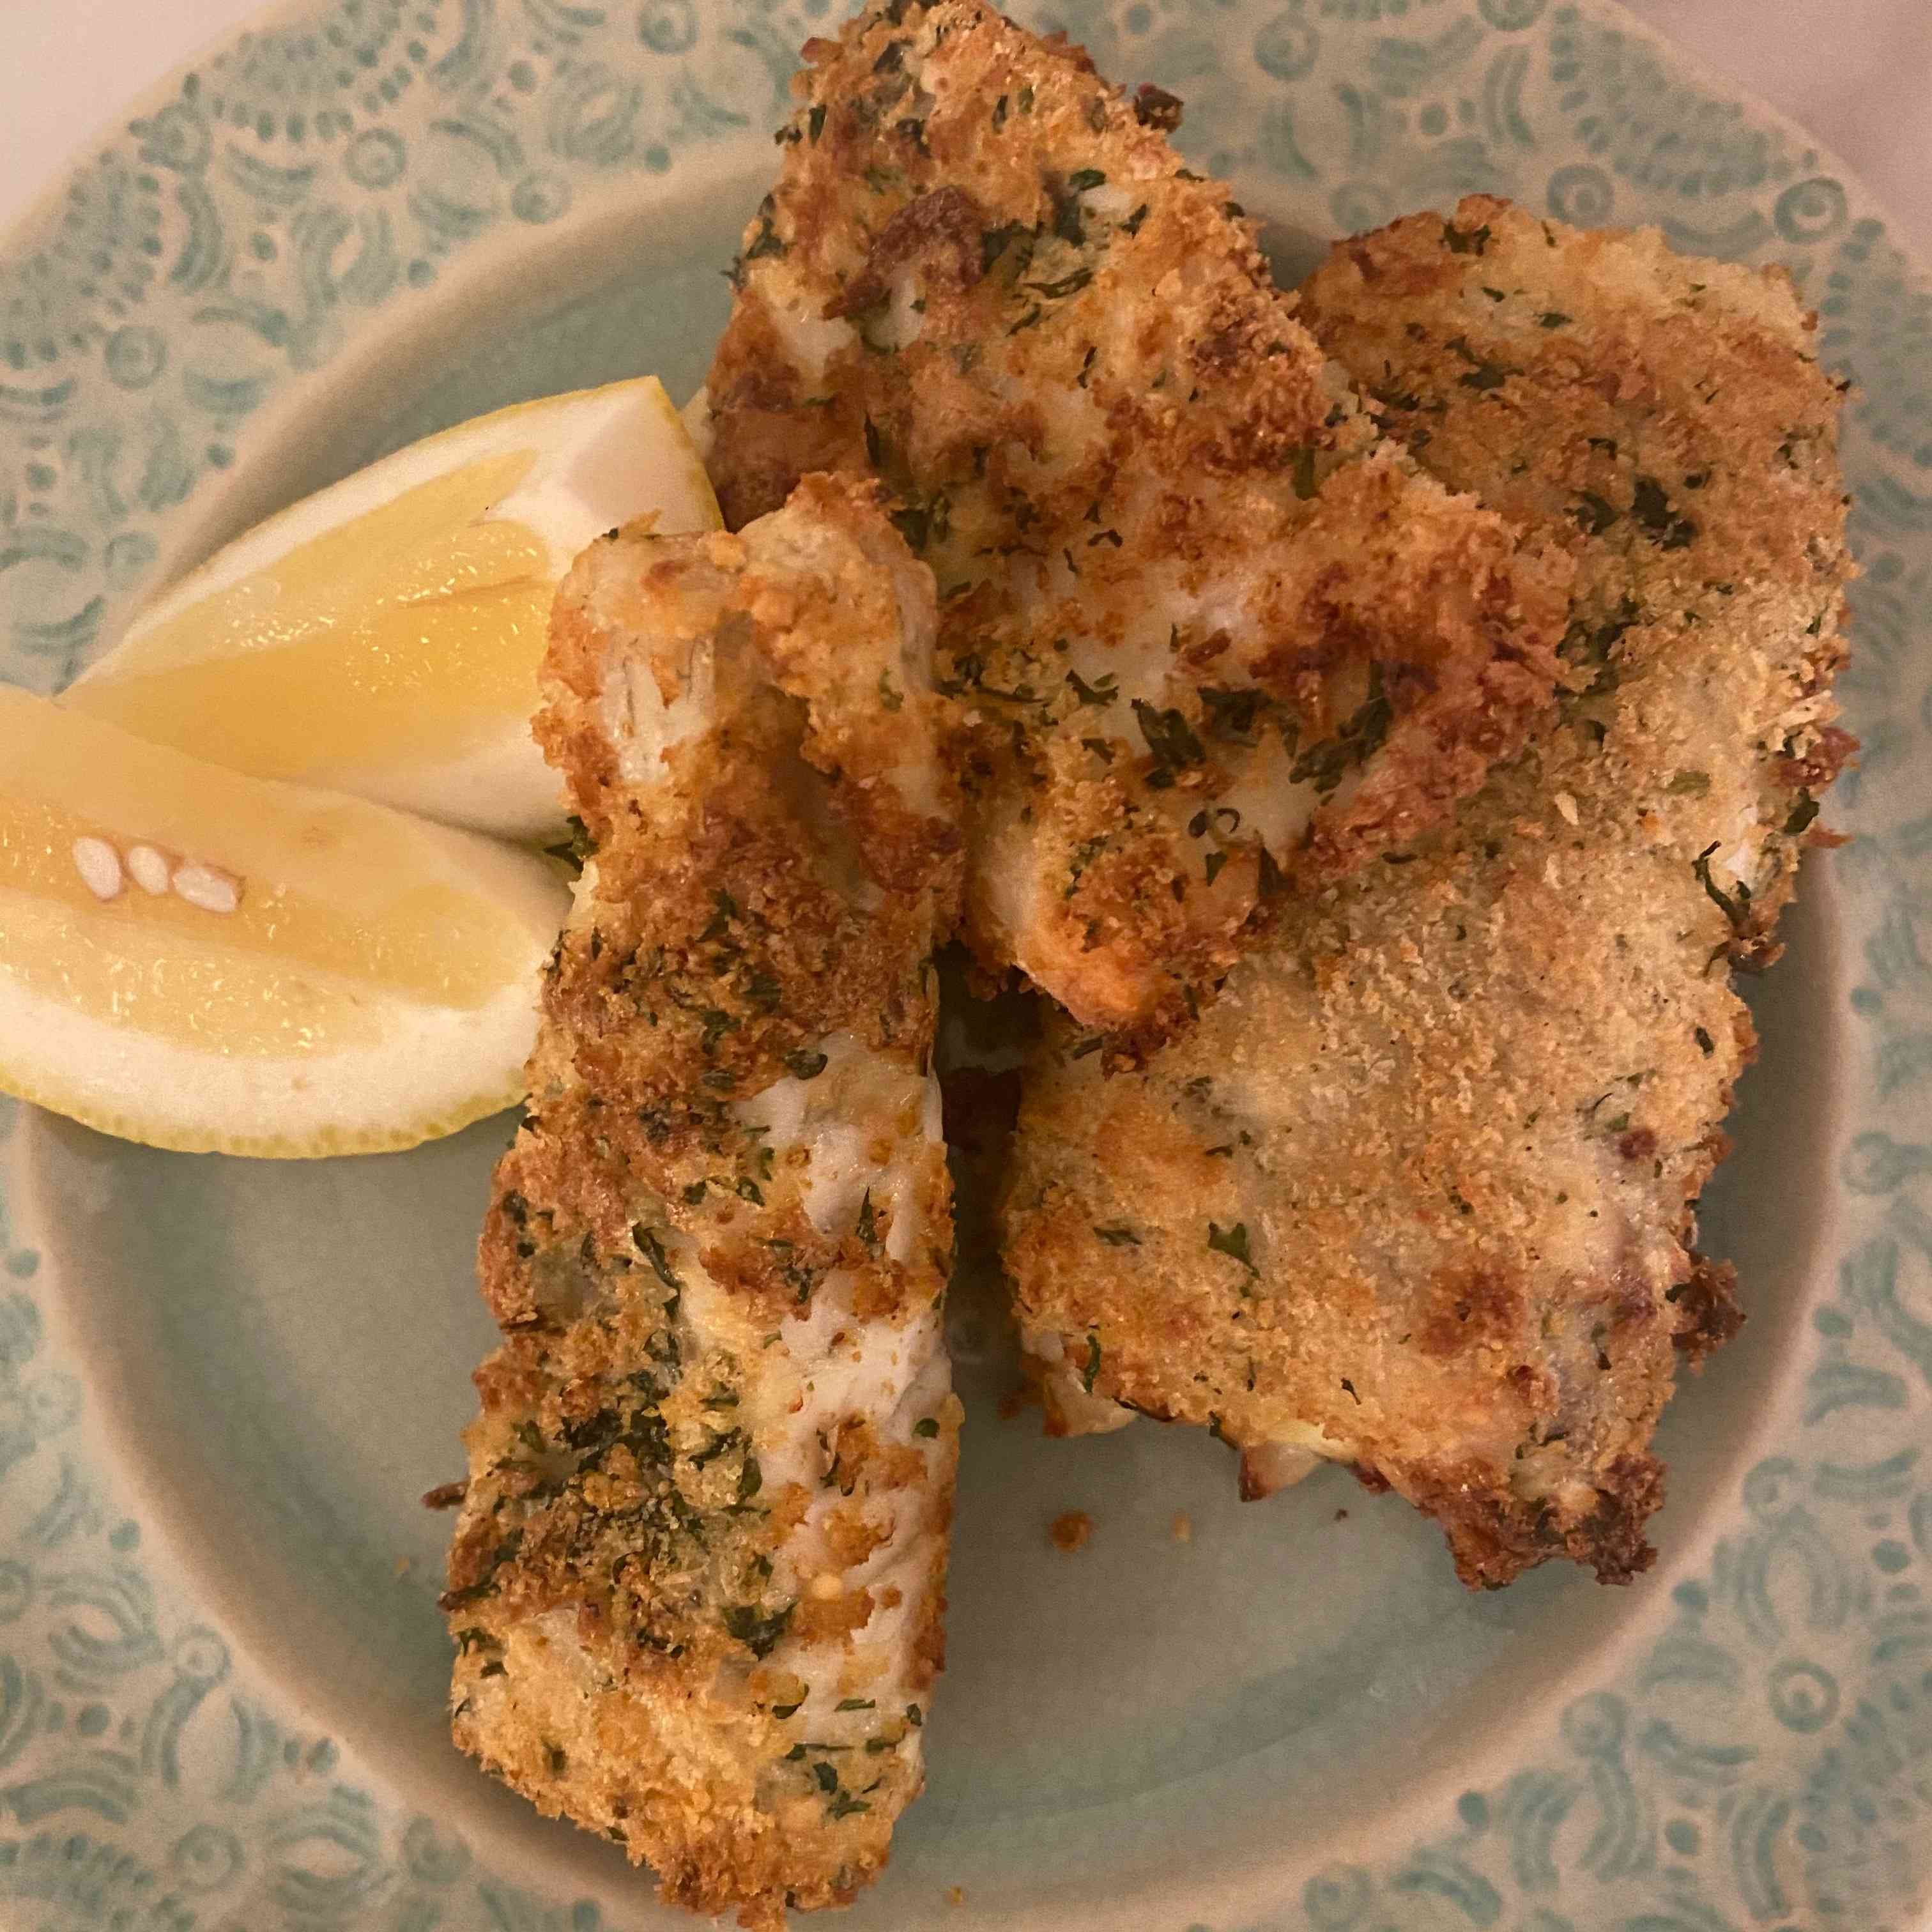 Baked Panko-Crusted Fish Fillets Tester Image